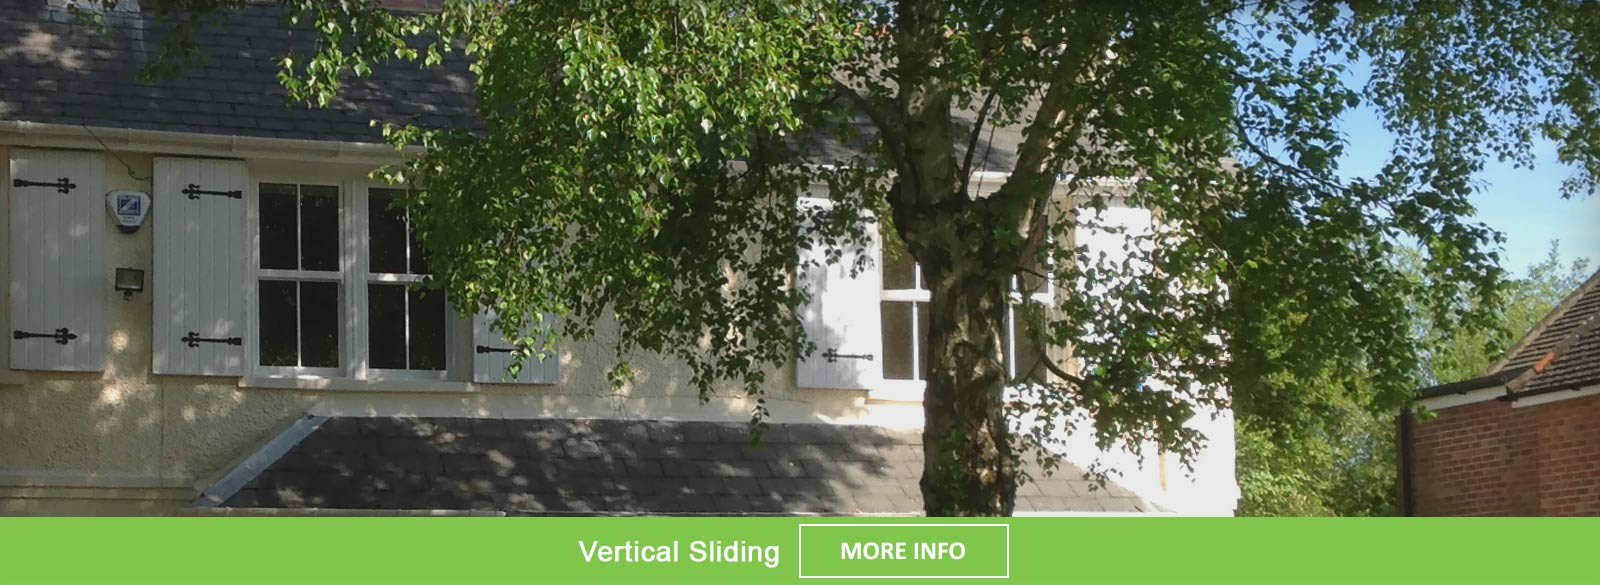 virtical sliding windows